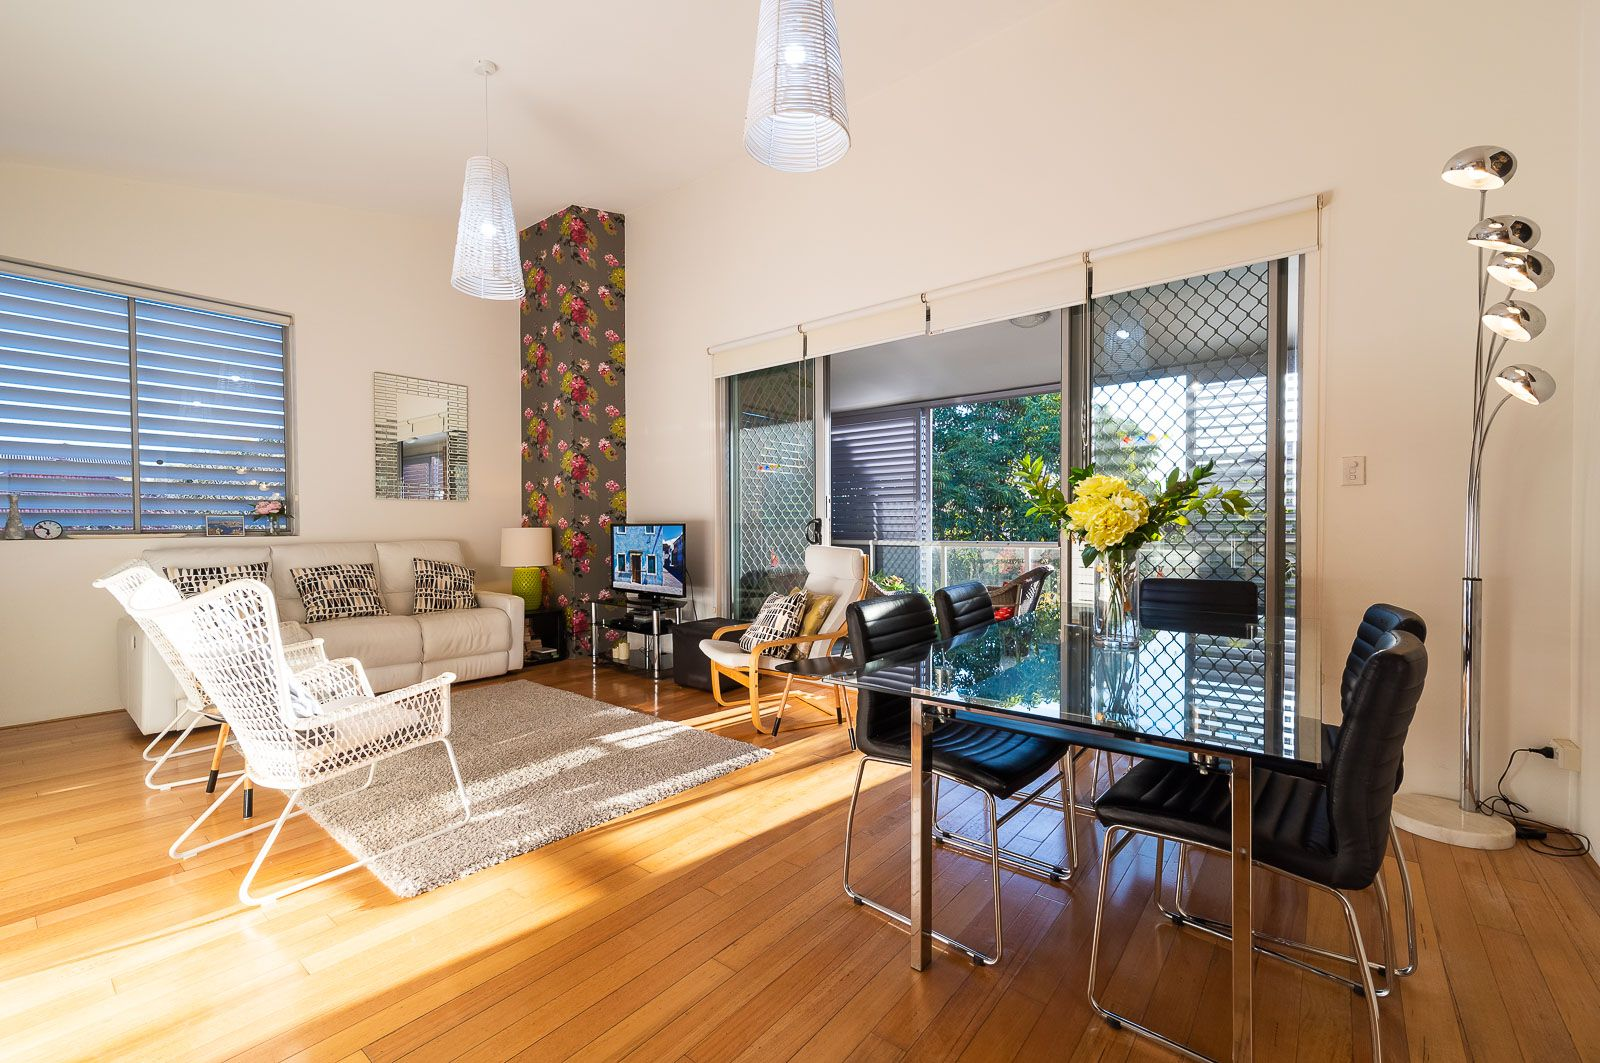 14/107 Wentworth Rd, Randwick NSW 2031, Image 1